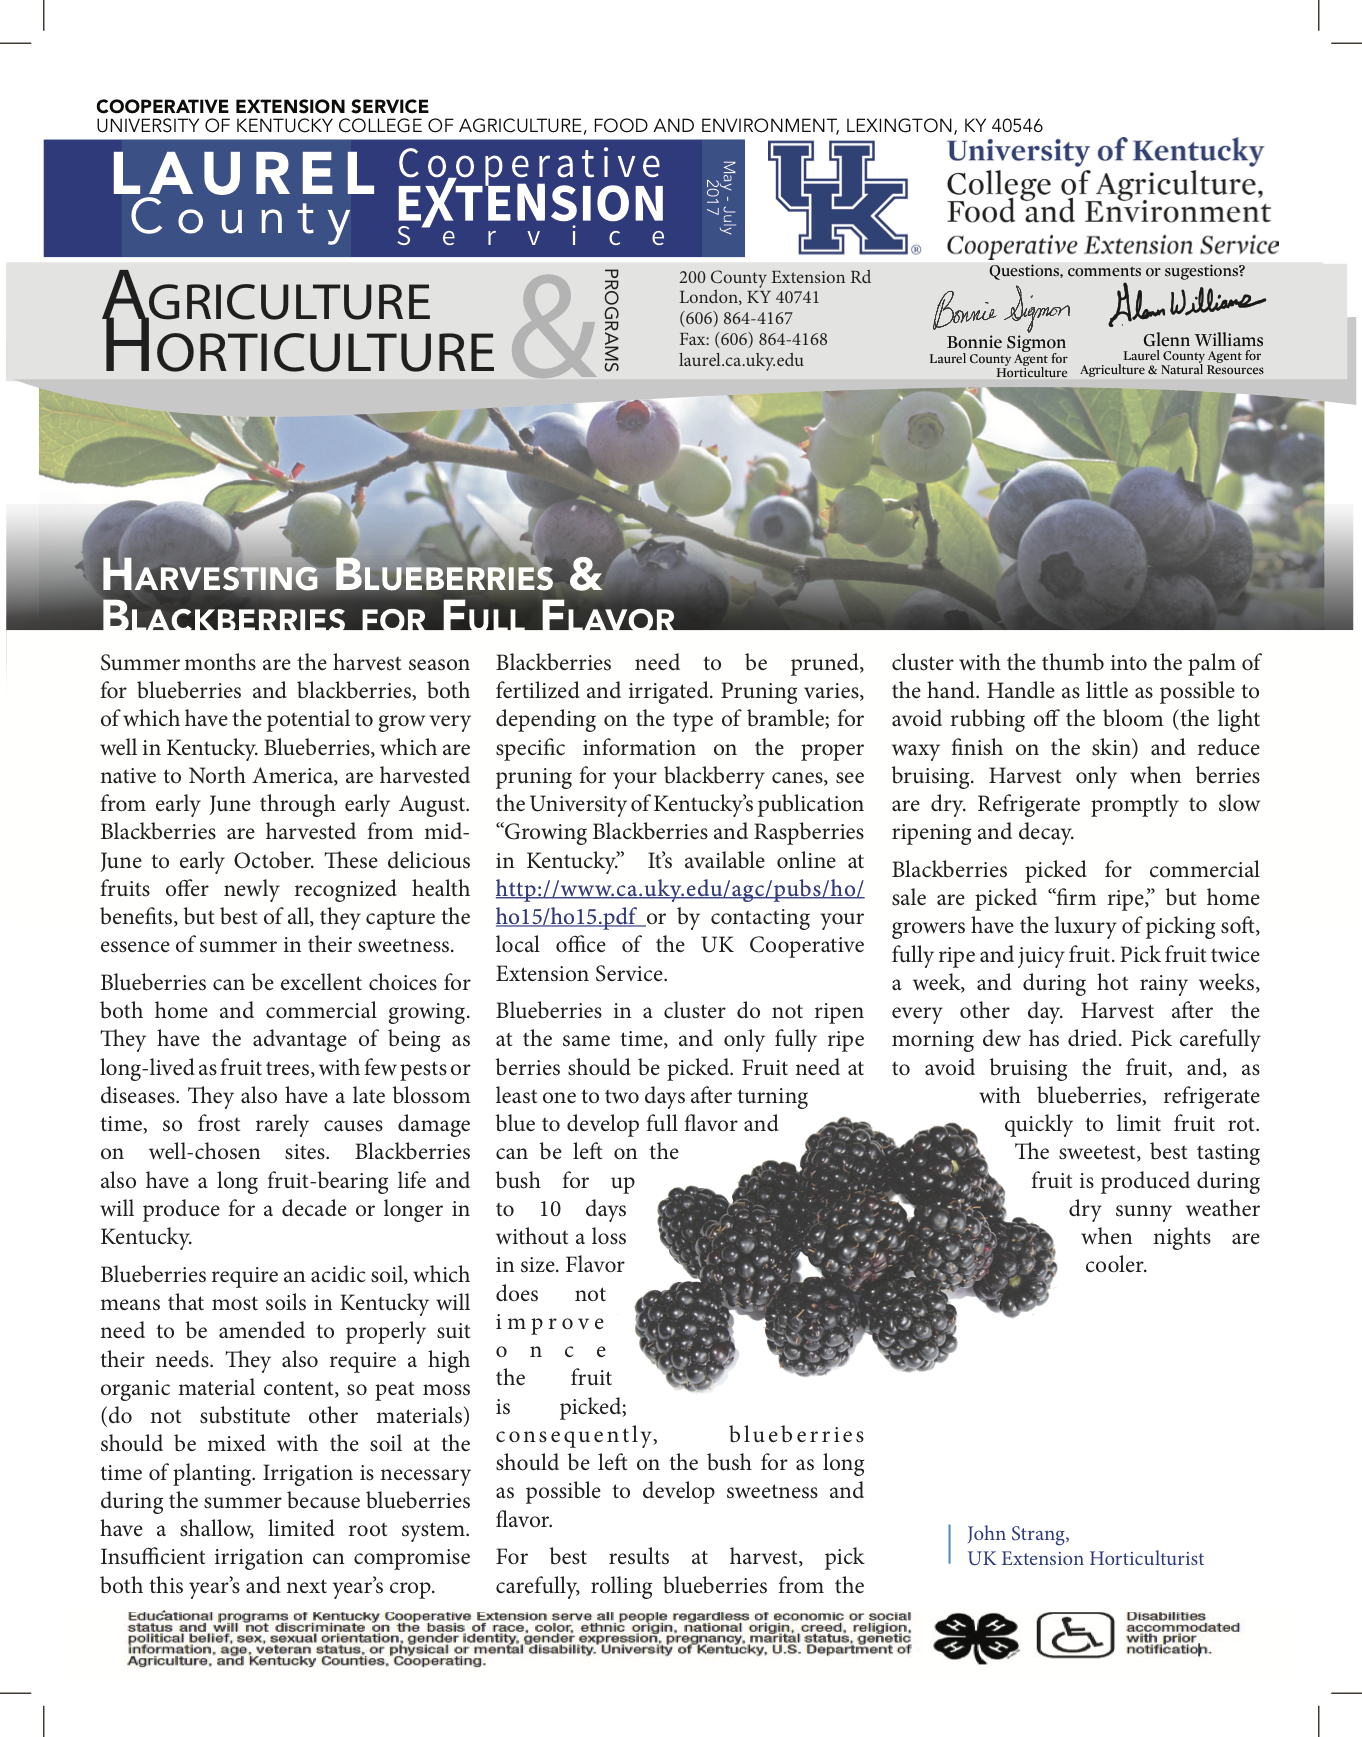 Agriculture & Horticulture Quarterly Newsletter May-July 2017